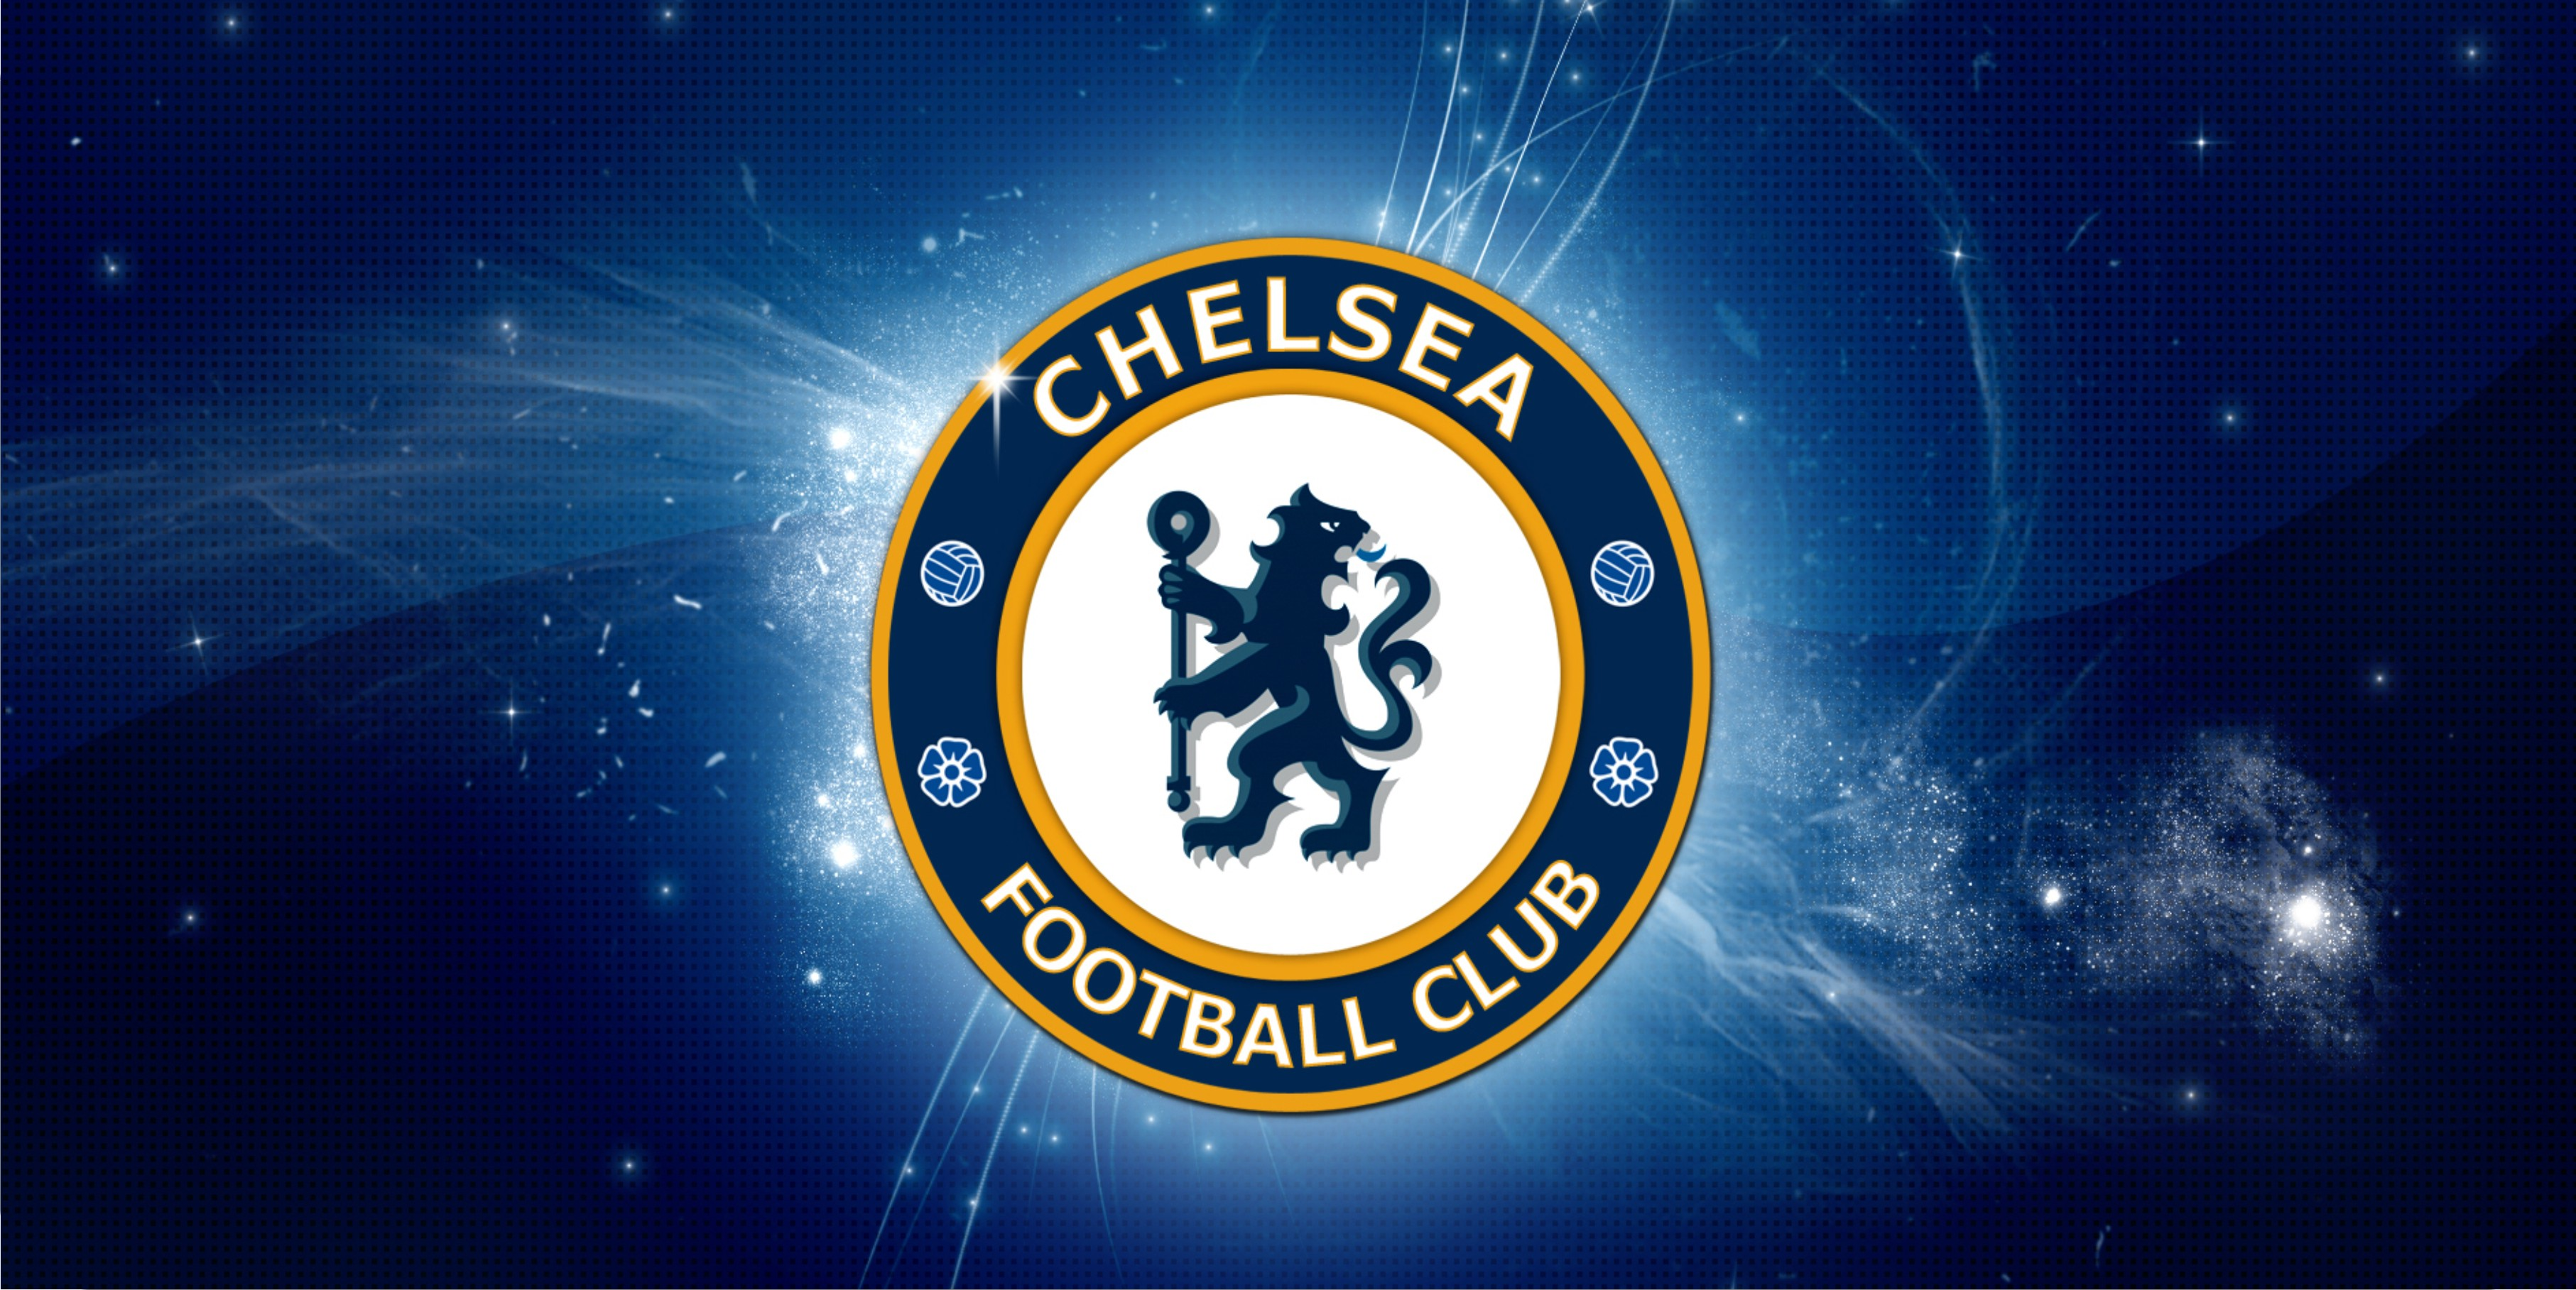 Chelsea FOOTBALL Club Photo License Plate   Free Personalization on this Plate